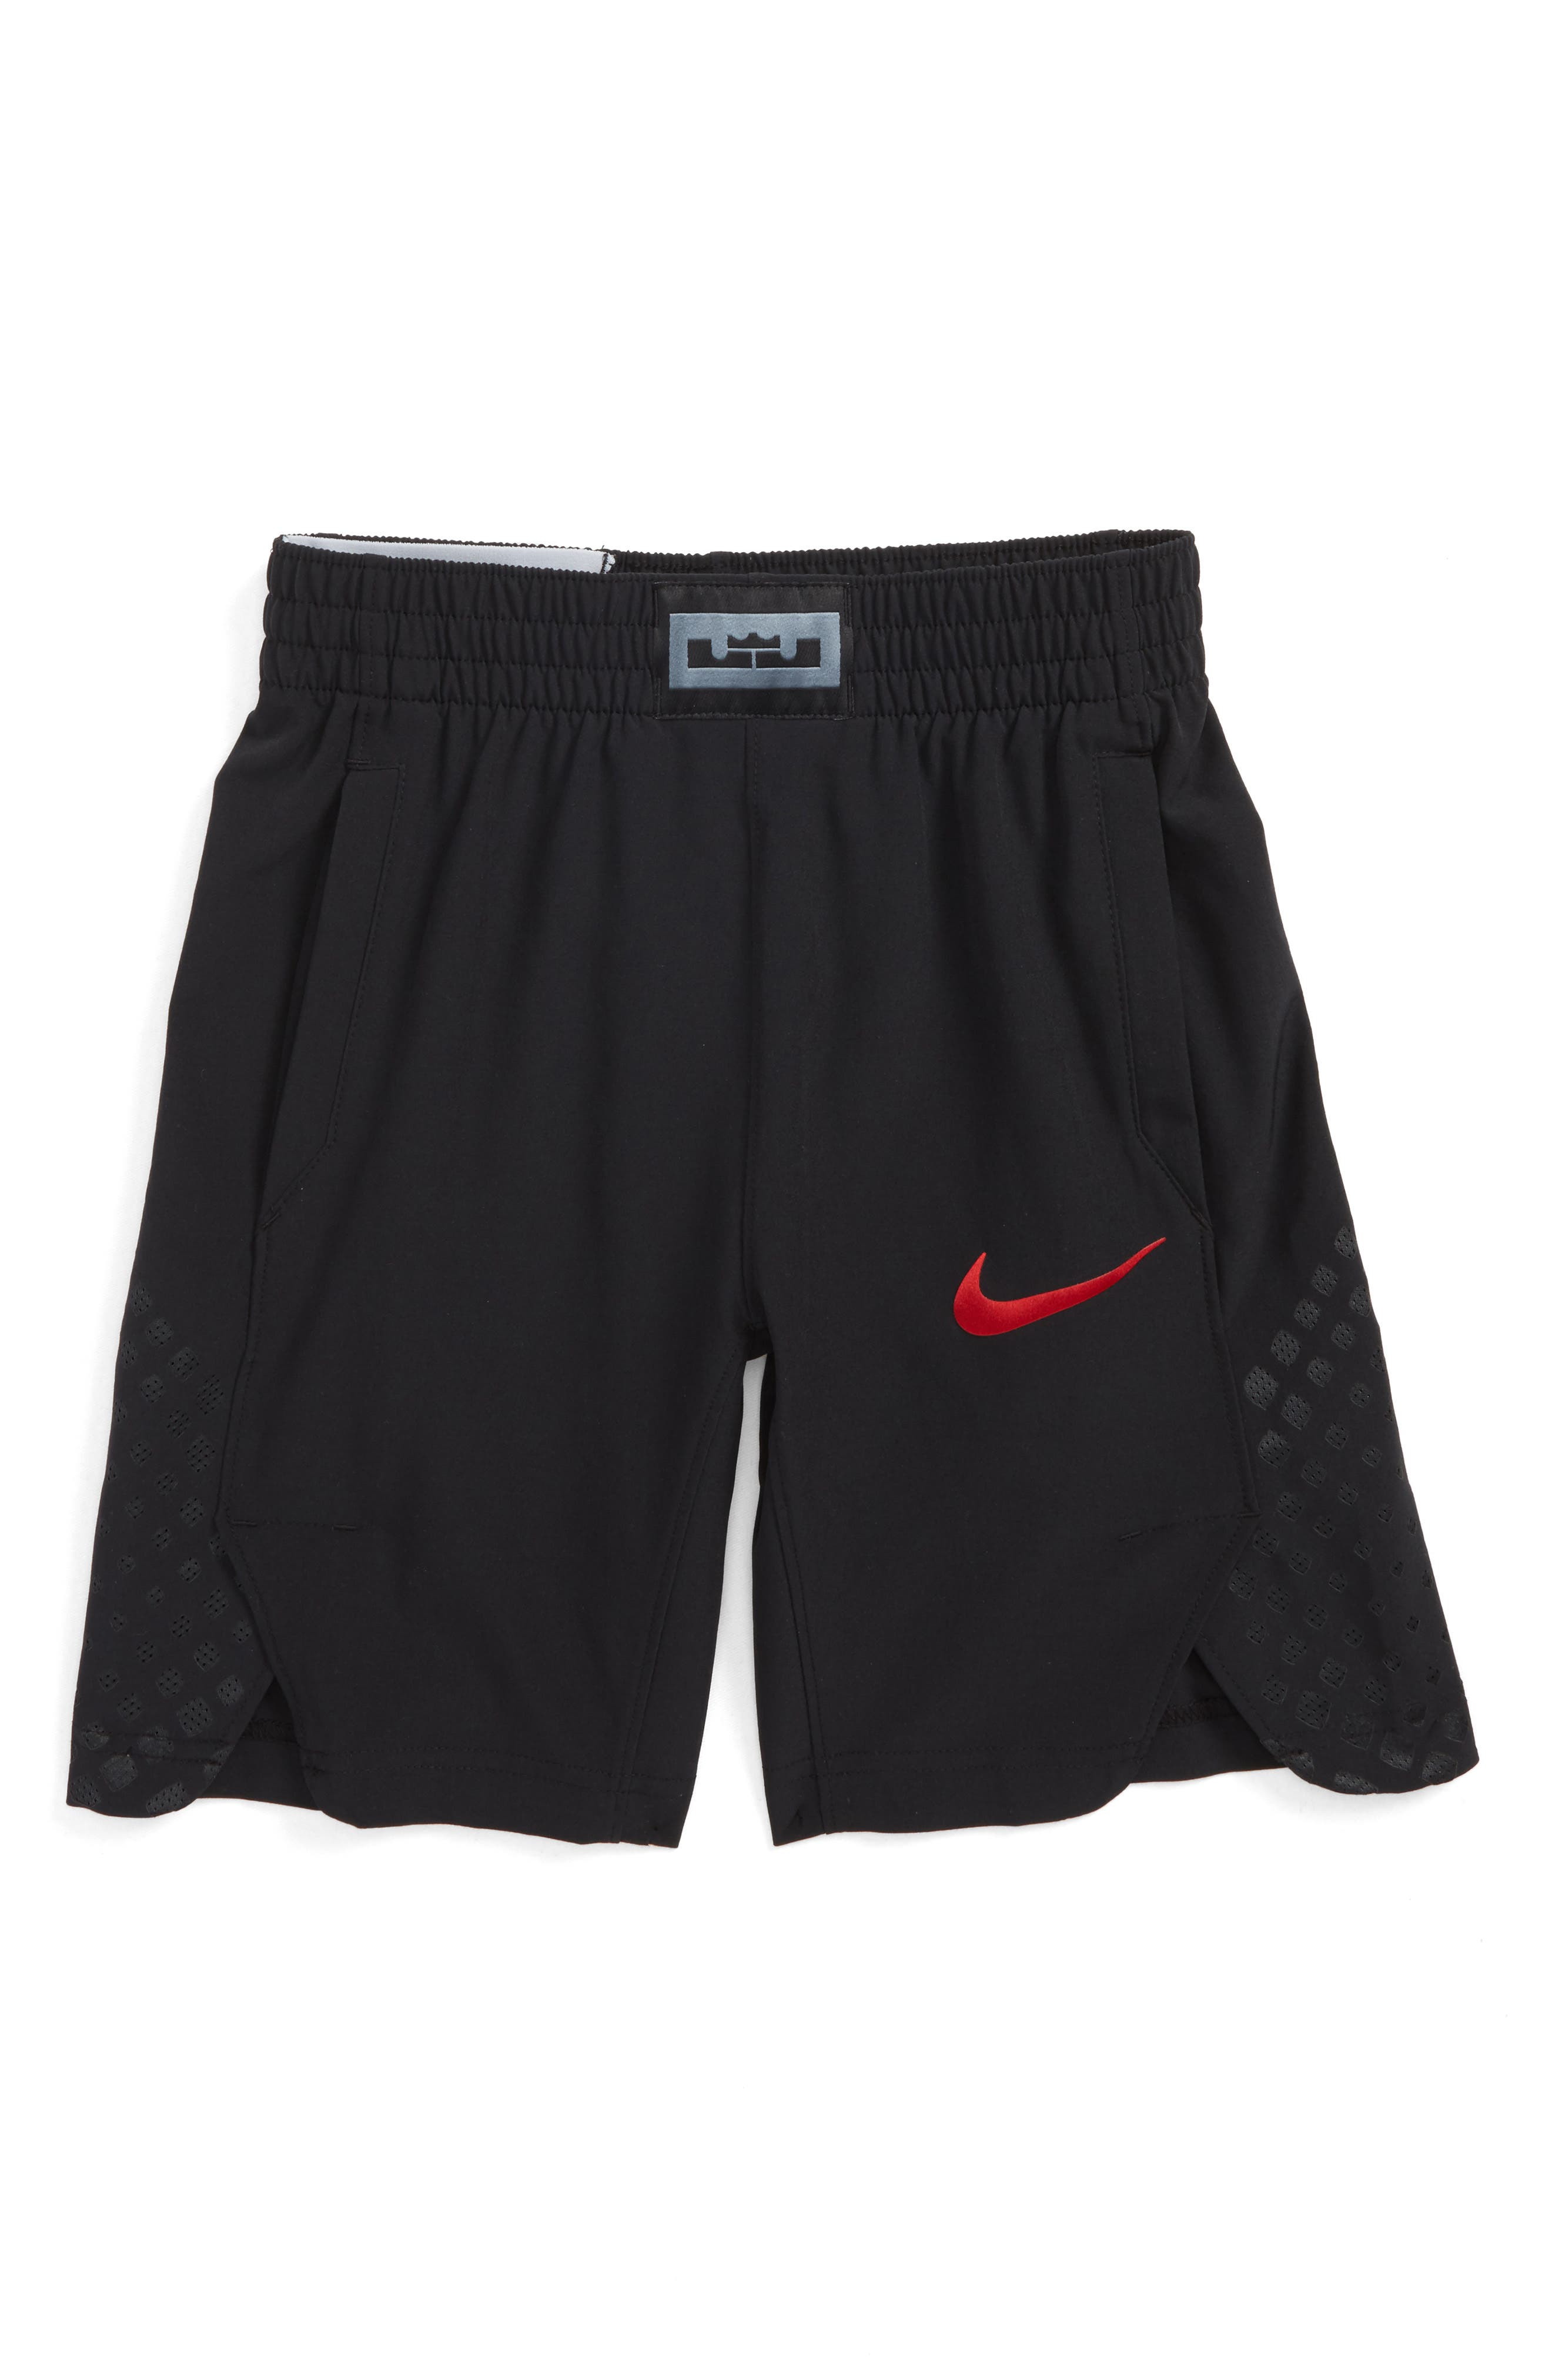 Alternate Image 1 Selected - Nike LeBron James Flex Hyper Elite Basketball Shorts